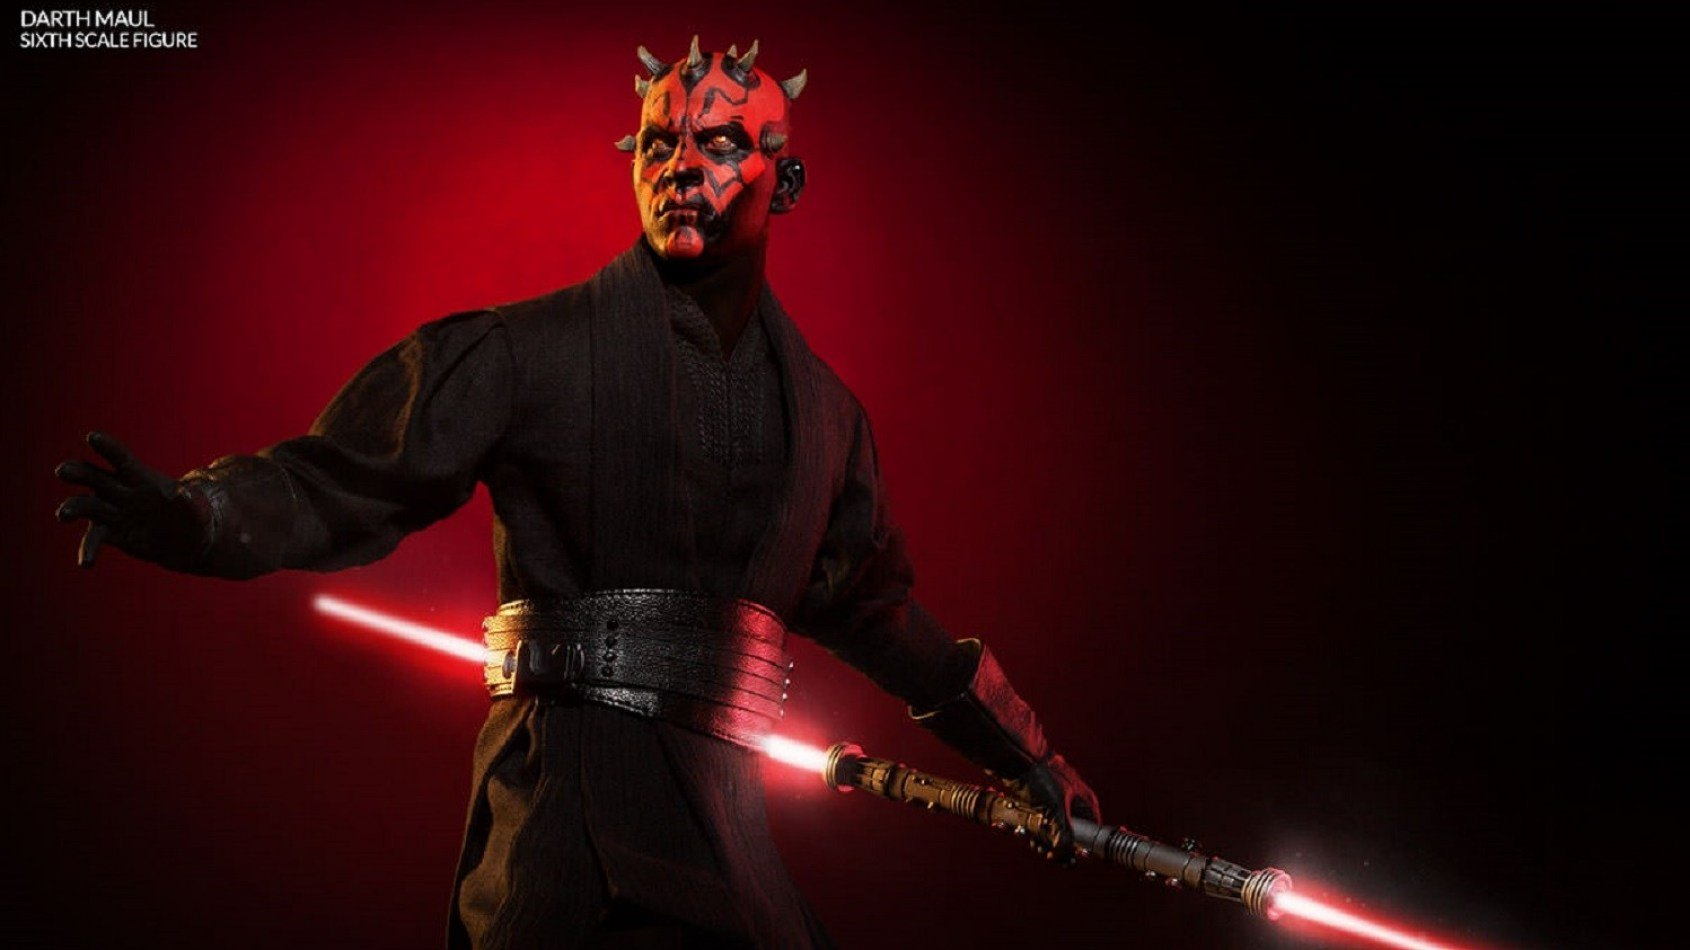 [Sideshow Collectibles] Darth Maul Sixth Scale Figure en précommande